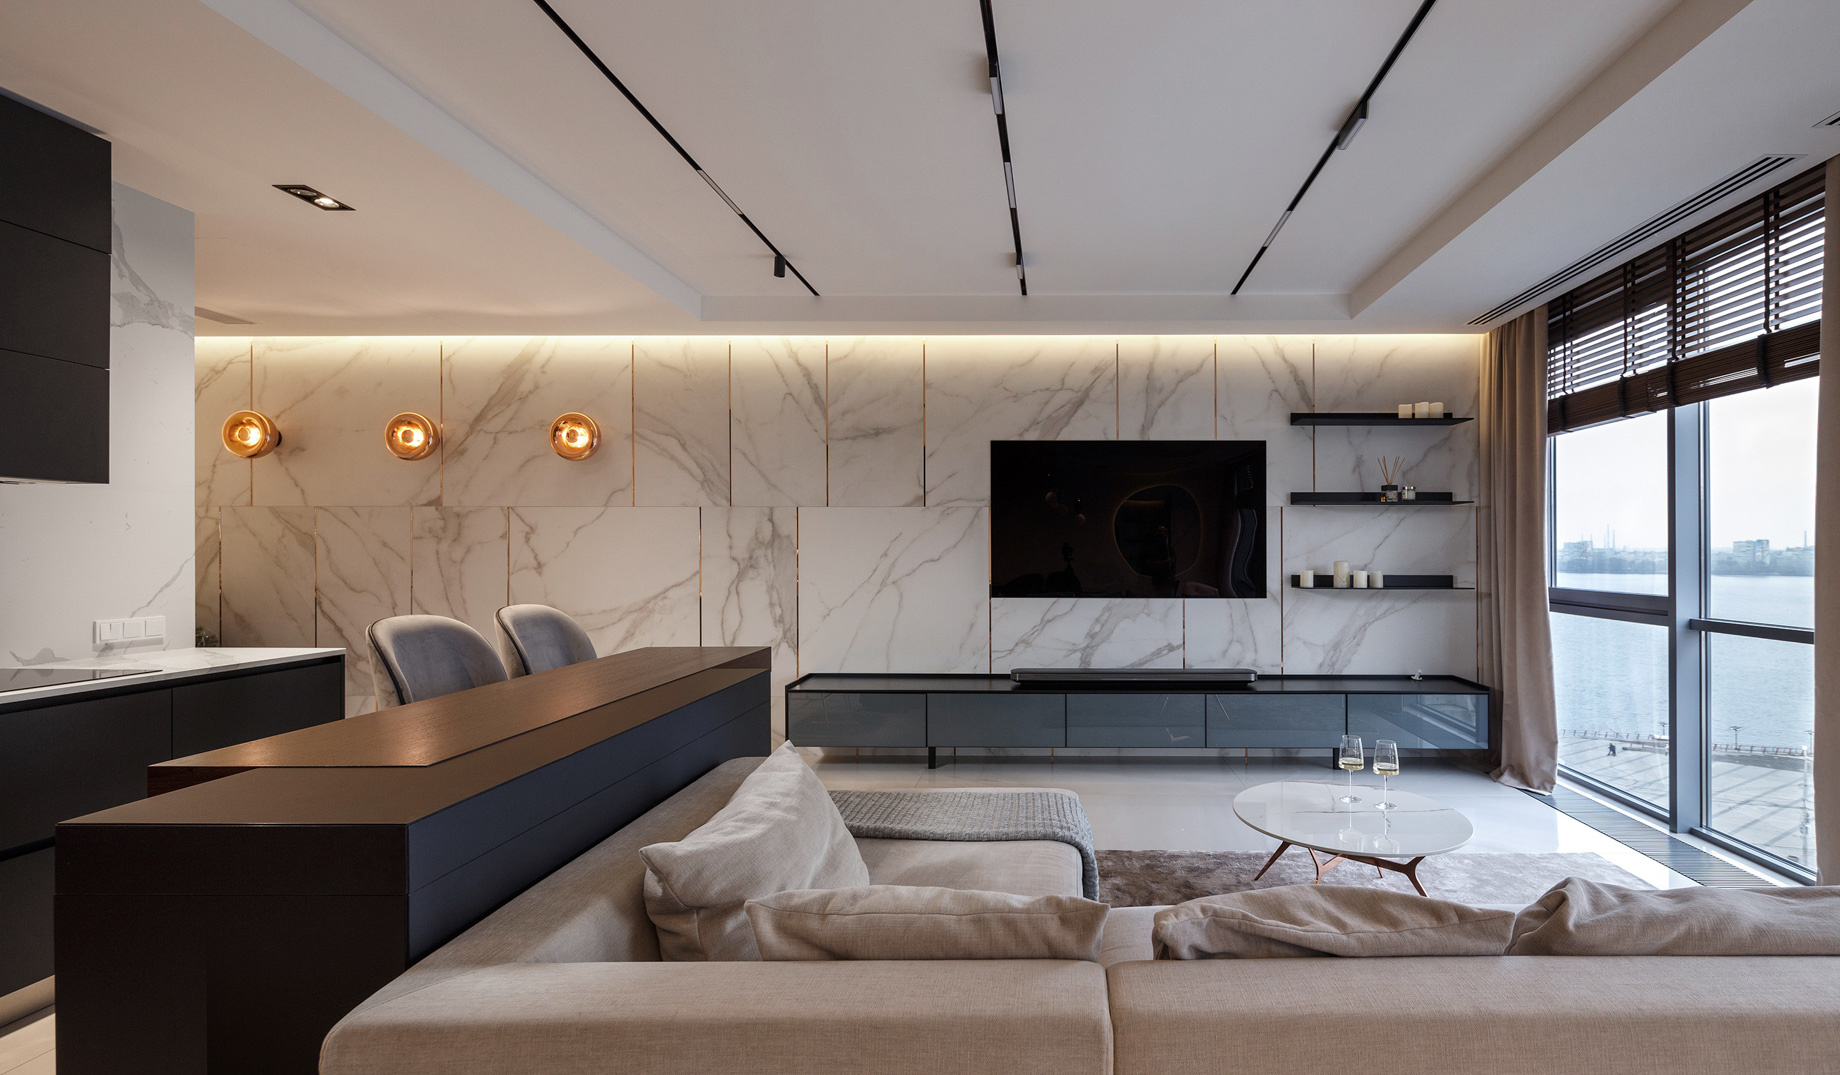 SHINE Luxury Apartment Interior Design Dnipro, Ukraine - Svoya Studio